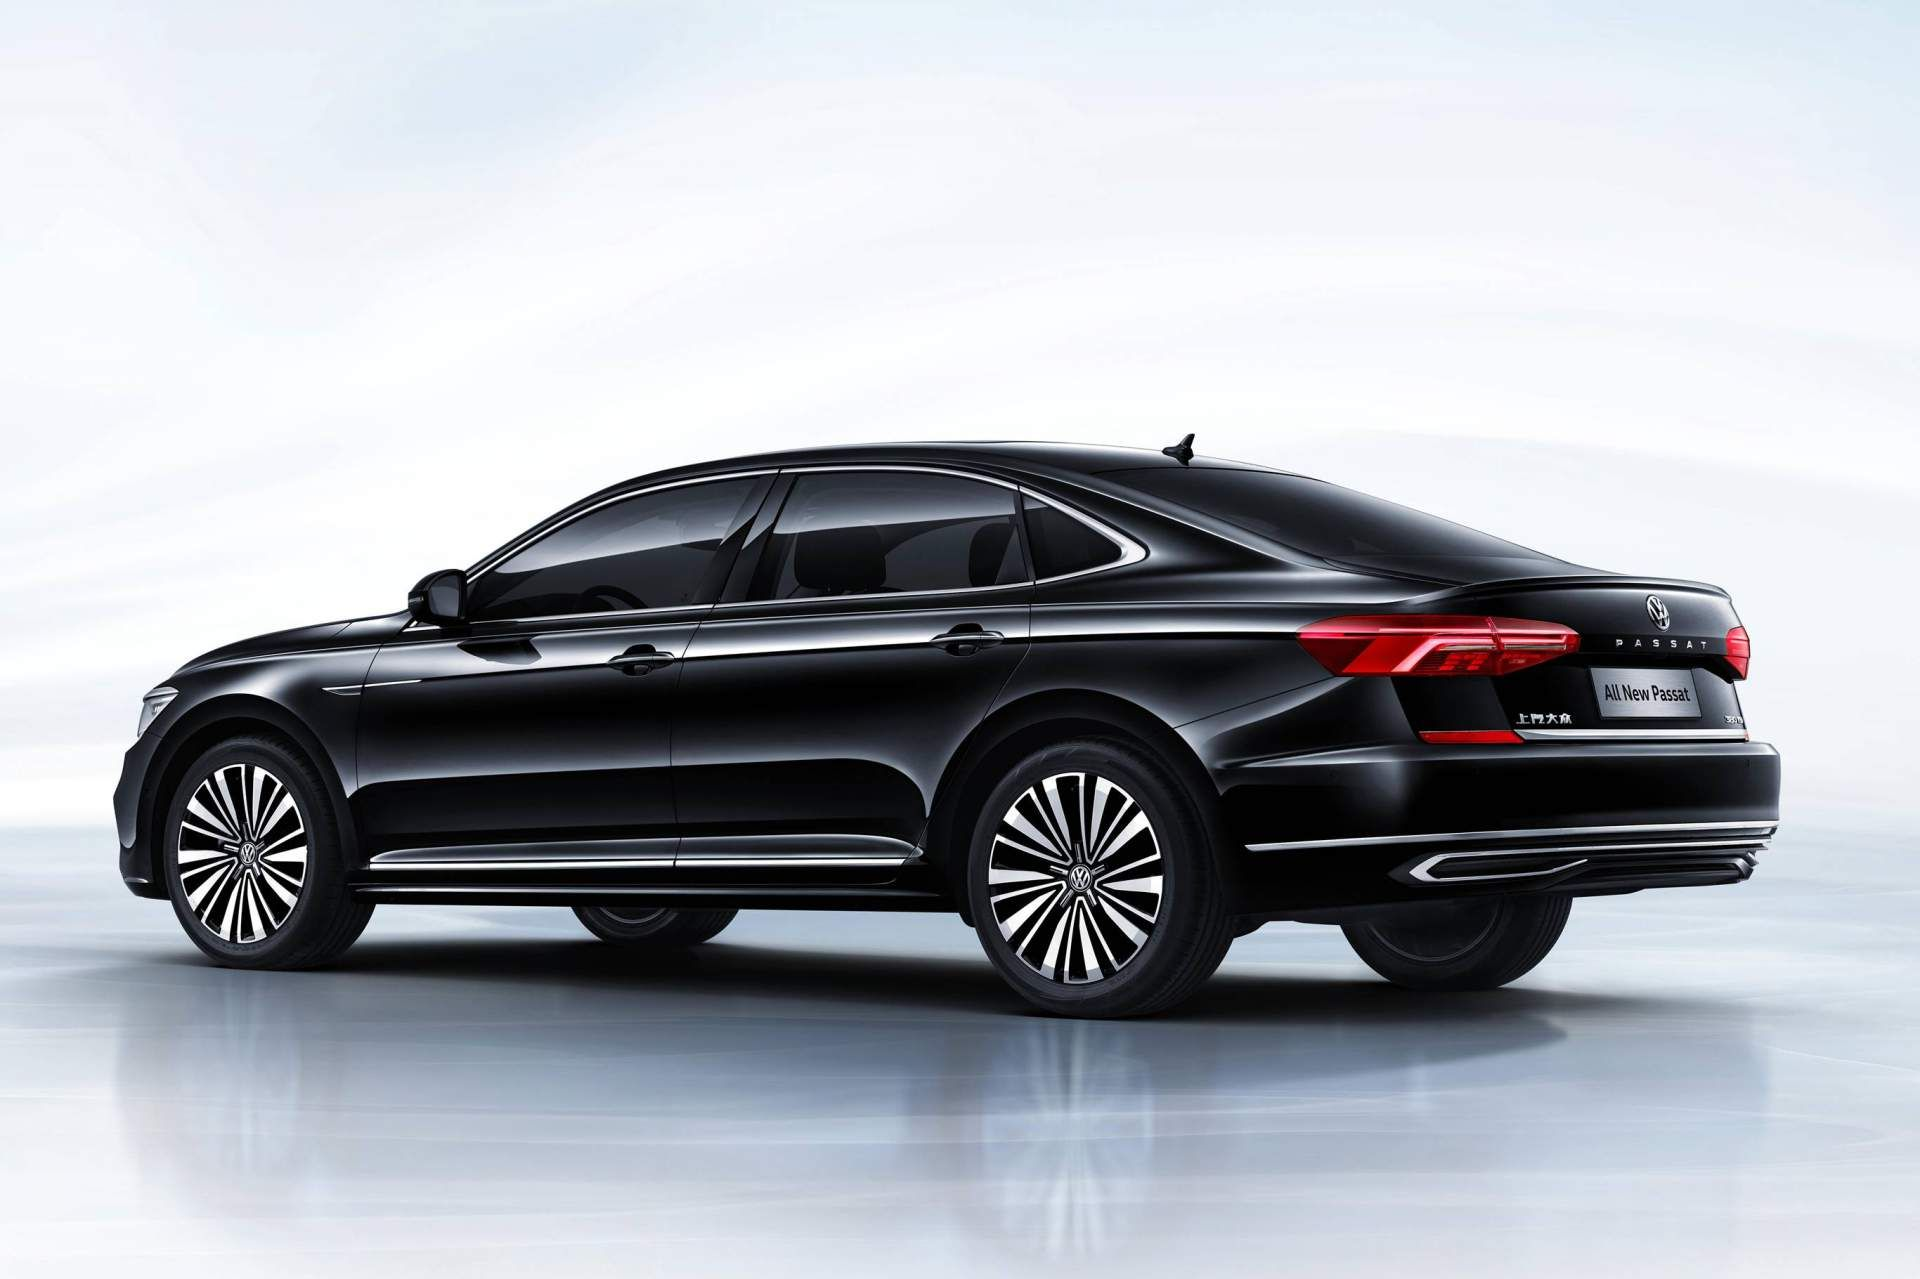 Next Generation Vw Cc Release Date and Concept